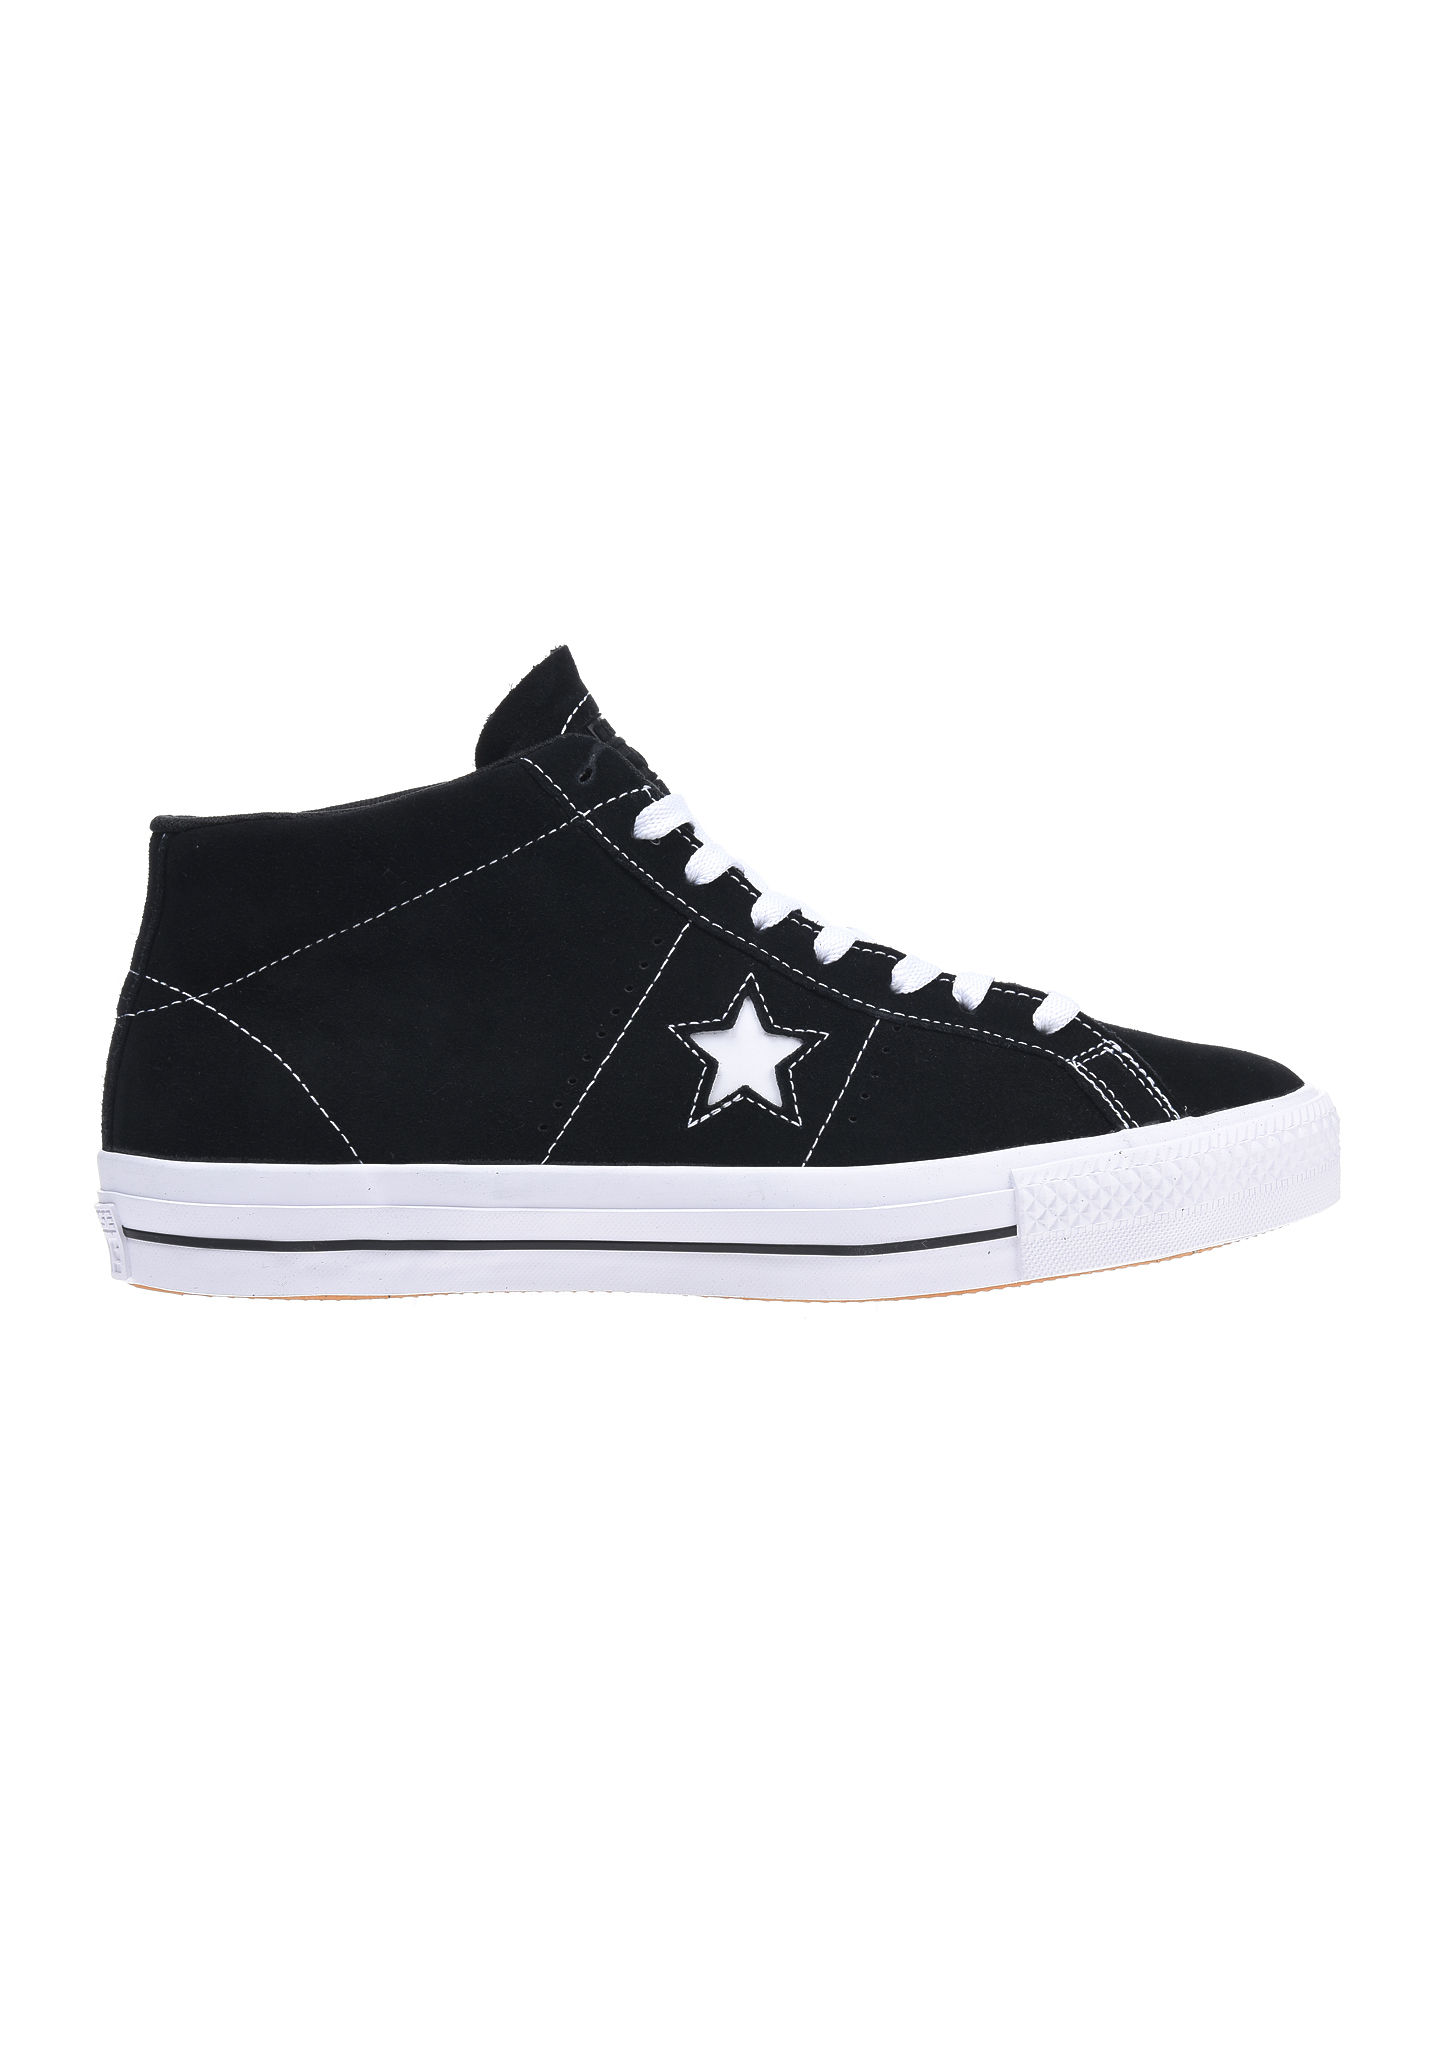 Converse One Star Pro Suede Mid Baskets Noir